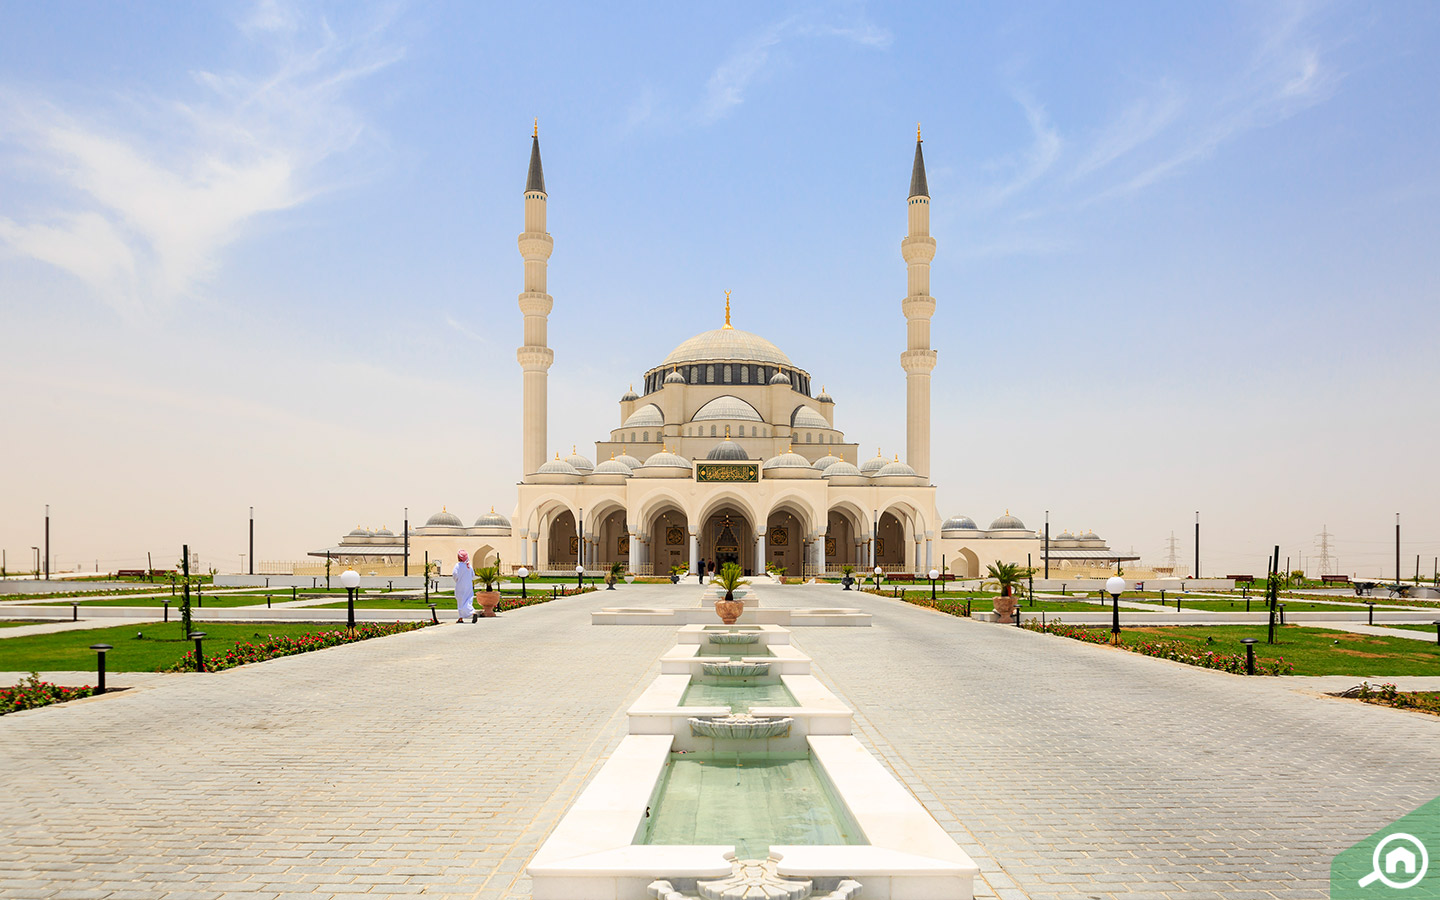 Pathways and Fountains at the mosque Sharjah